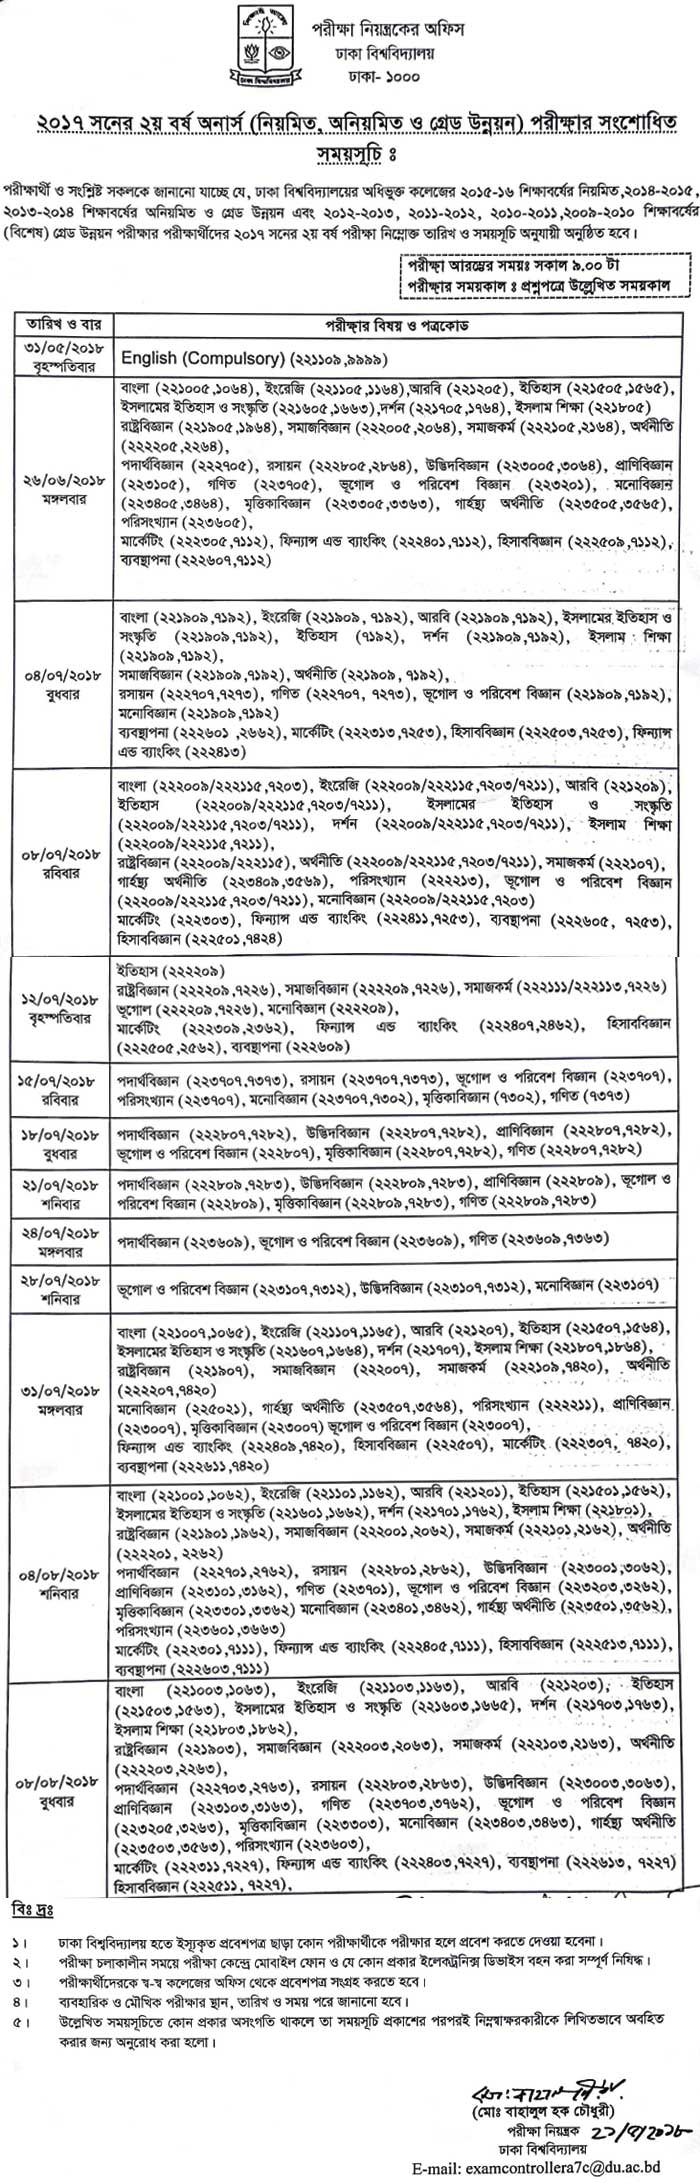 DU 7 College Honours 2nd Year Routine 2018